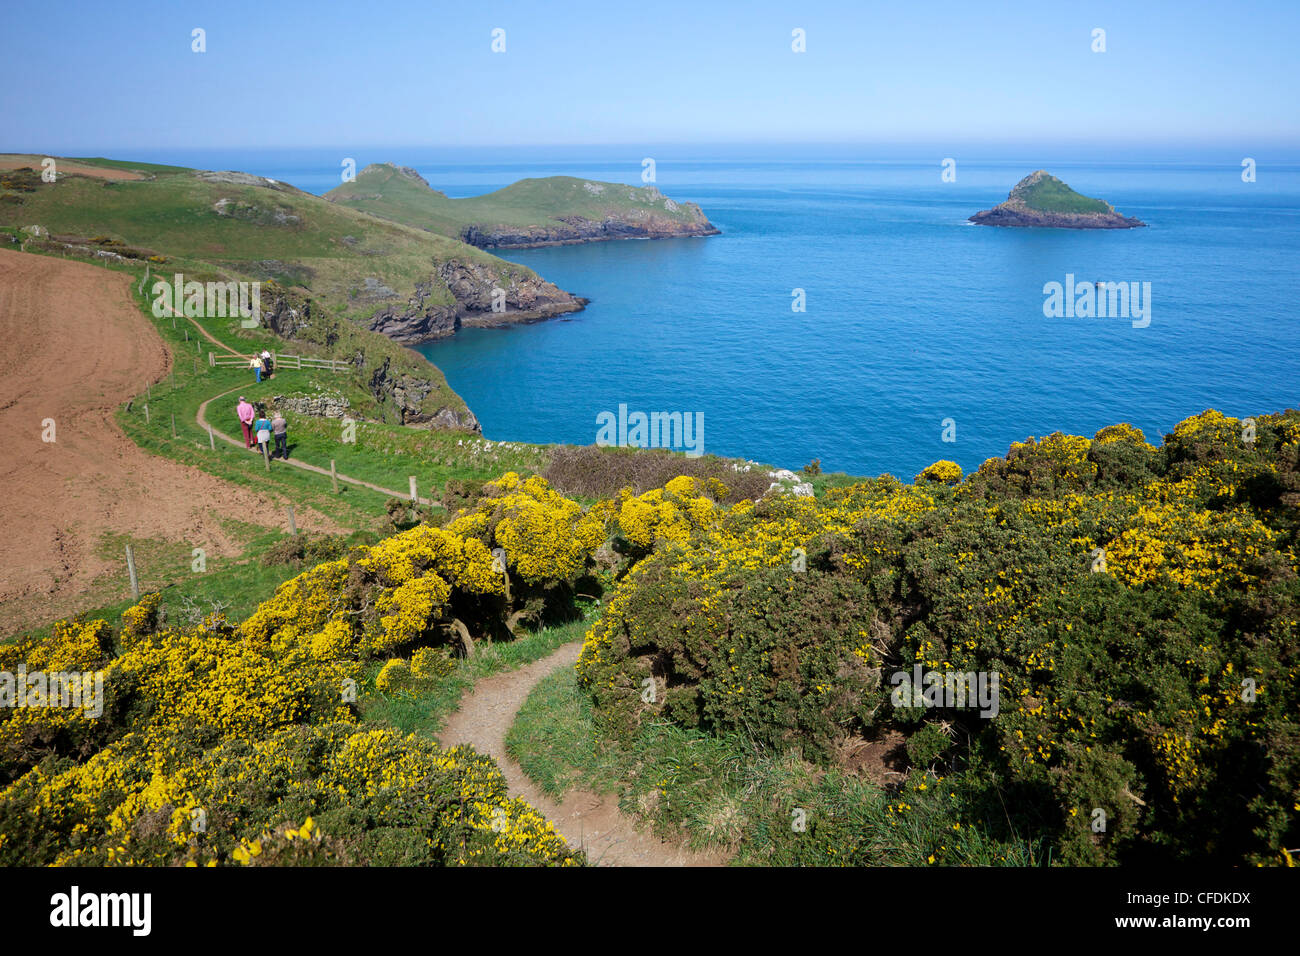 Walkers on coastpath with views of the Mouls and Rumps Point, Pentire Headland, Polzeath, North Cornwall, England, - Stock Image